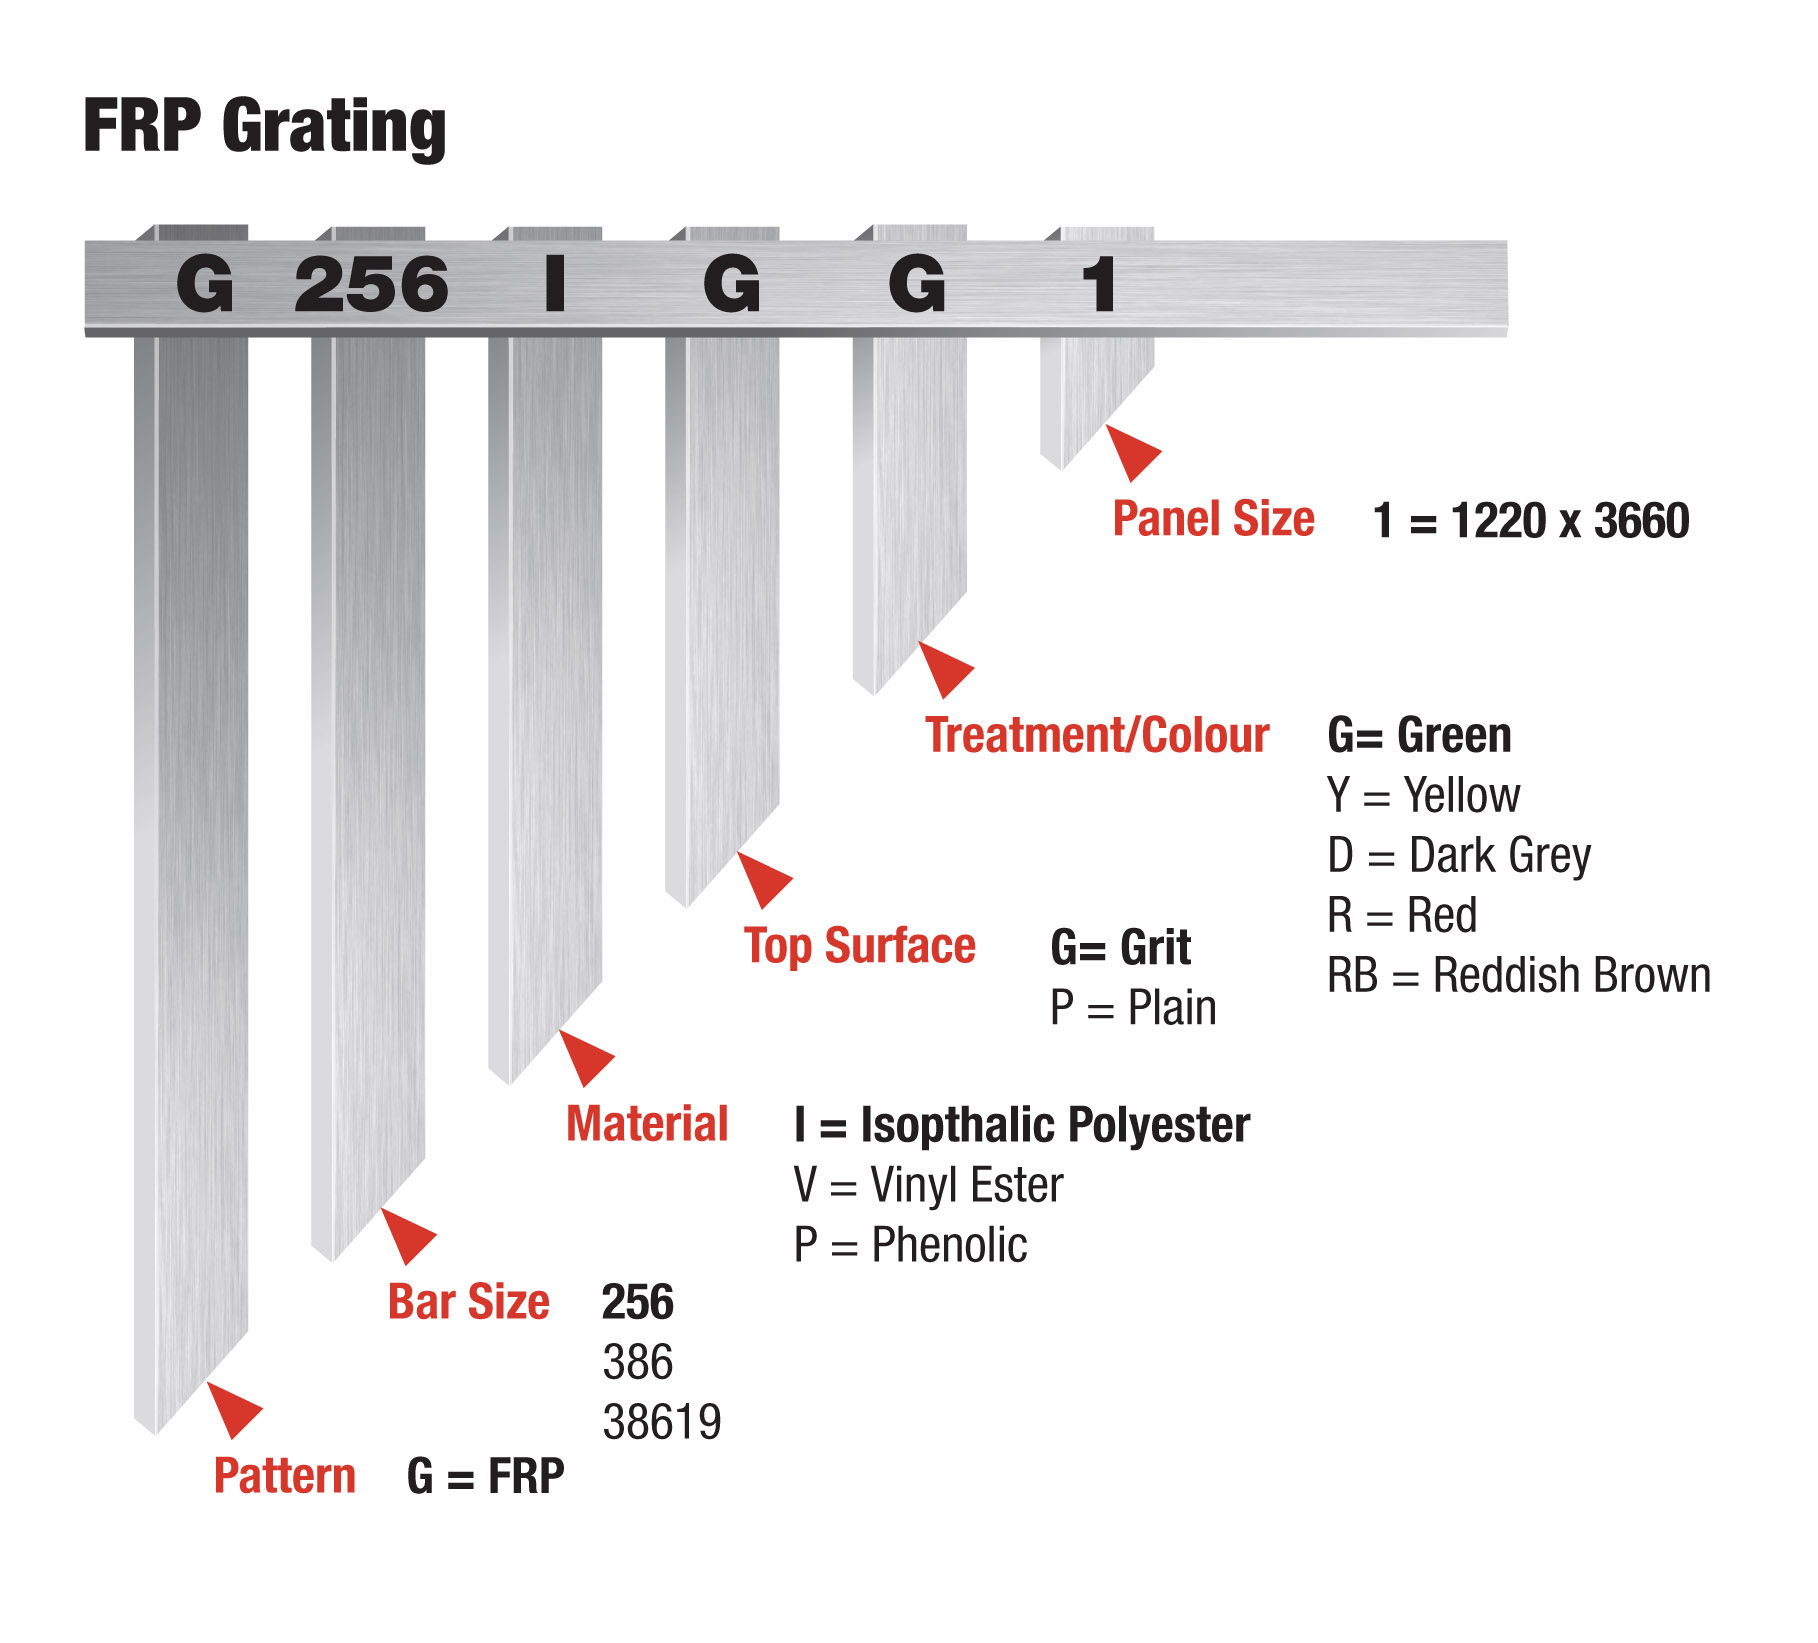 FRP GRATING part number protocols